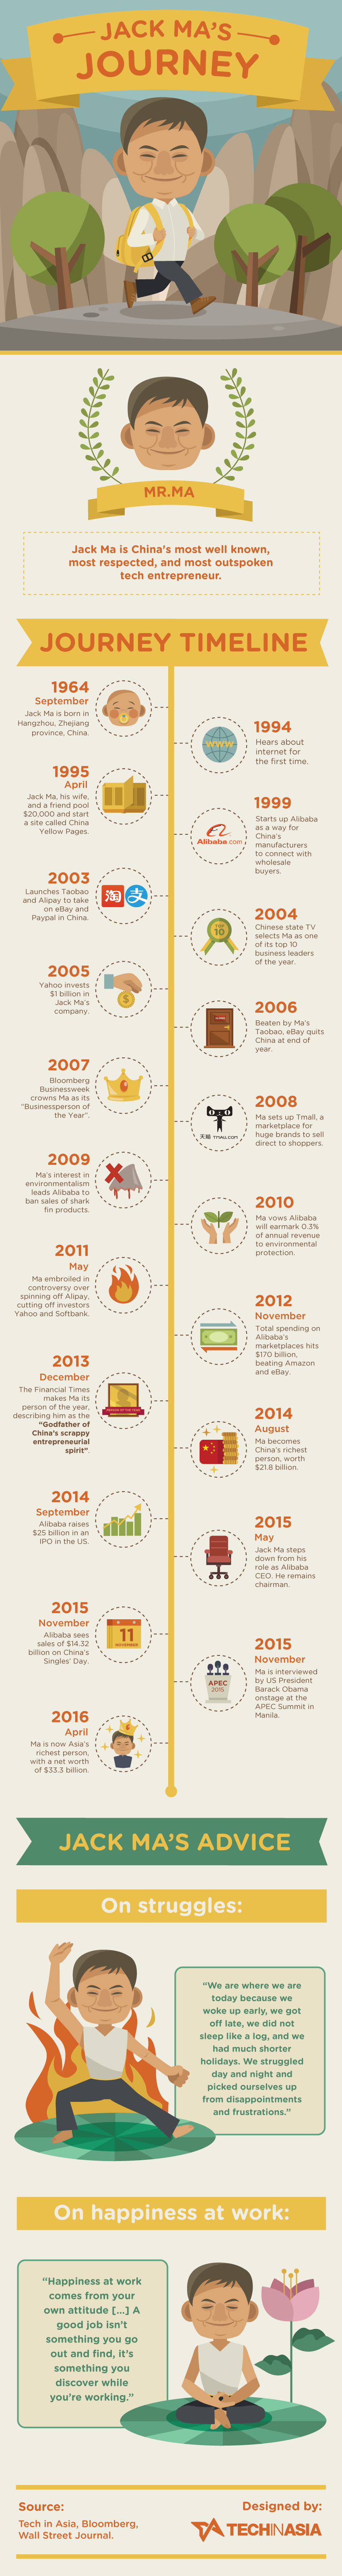 Jack Ma S Journey Infographic Inspiring Quotes And Life Help D